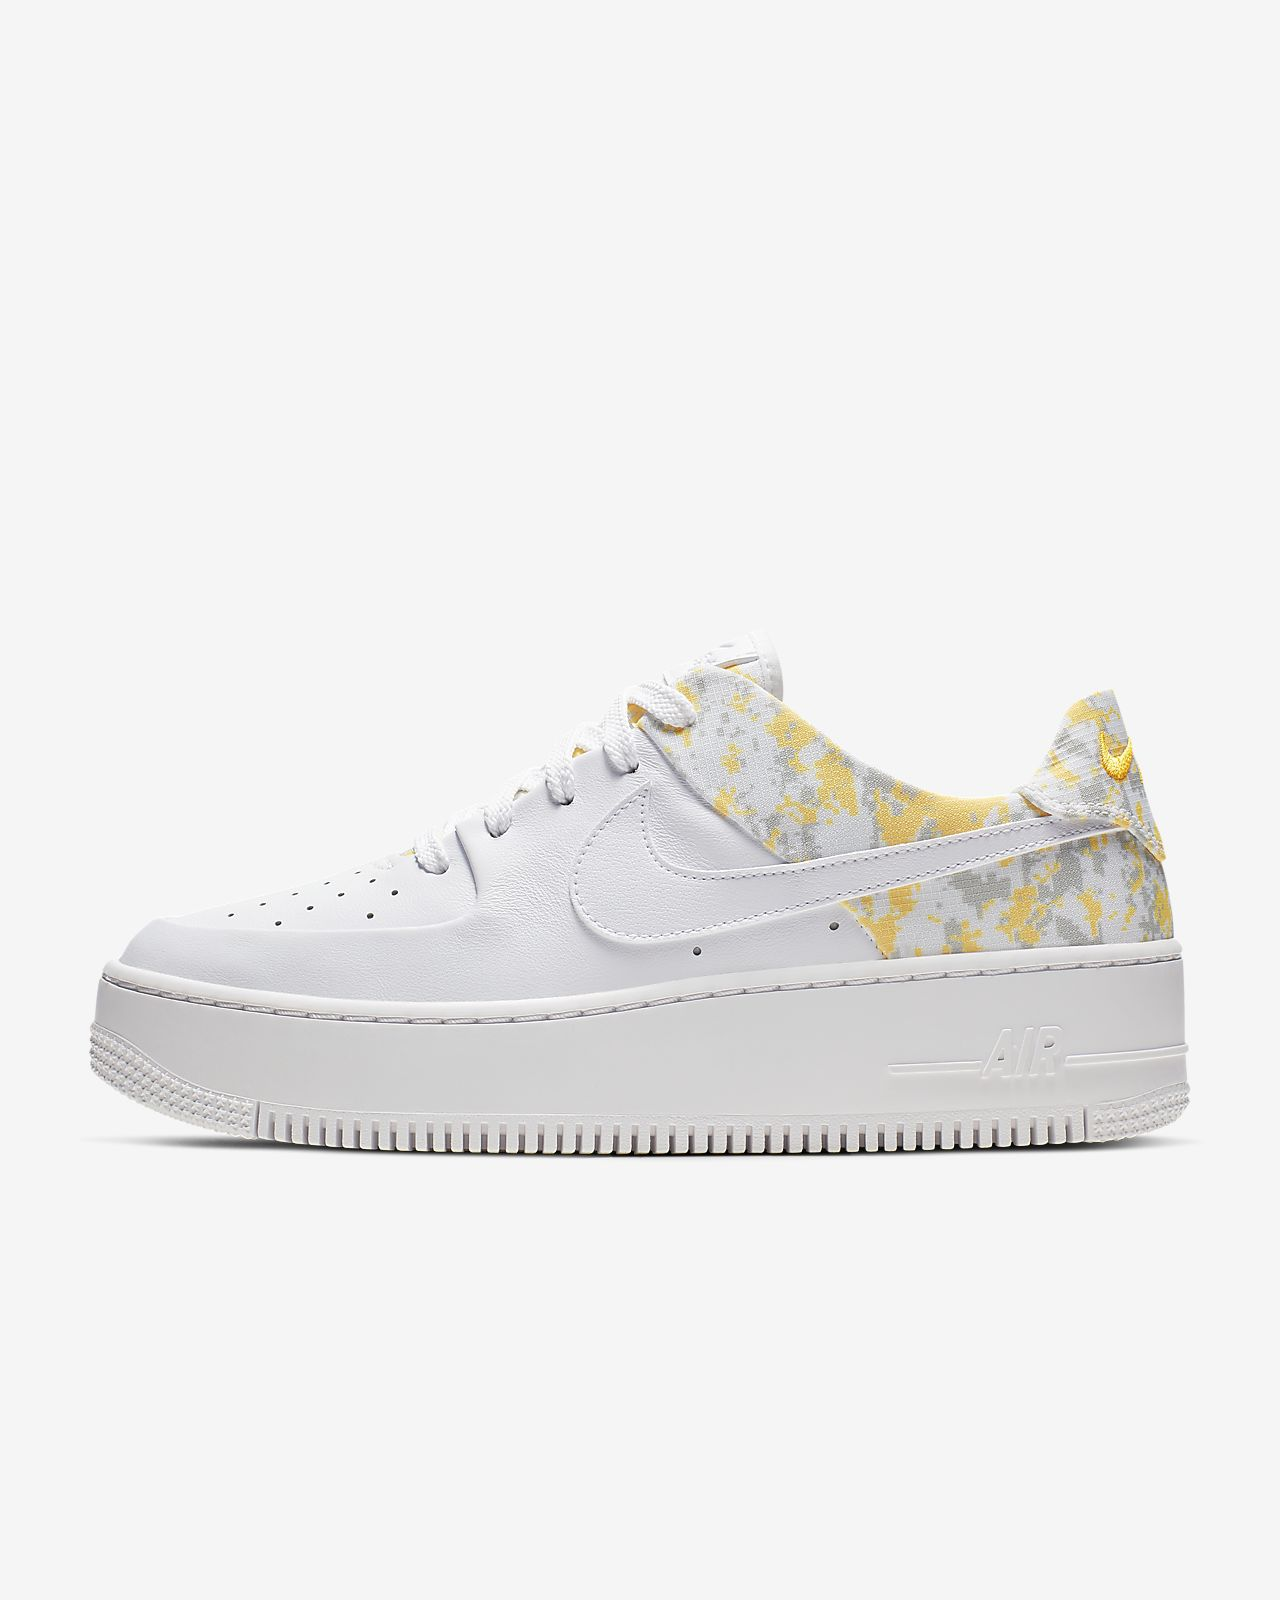 competitive price 16e48 b2ad2 Nike Air Force 1 Sage Low Premium Camo Women's Shoe